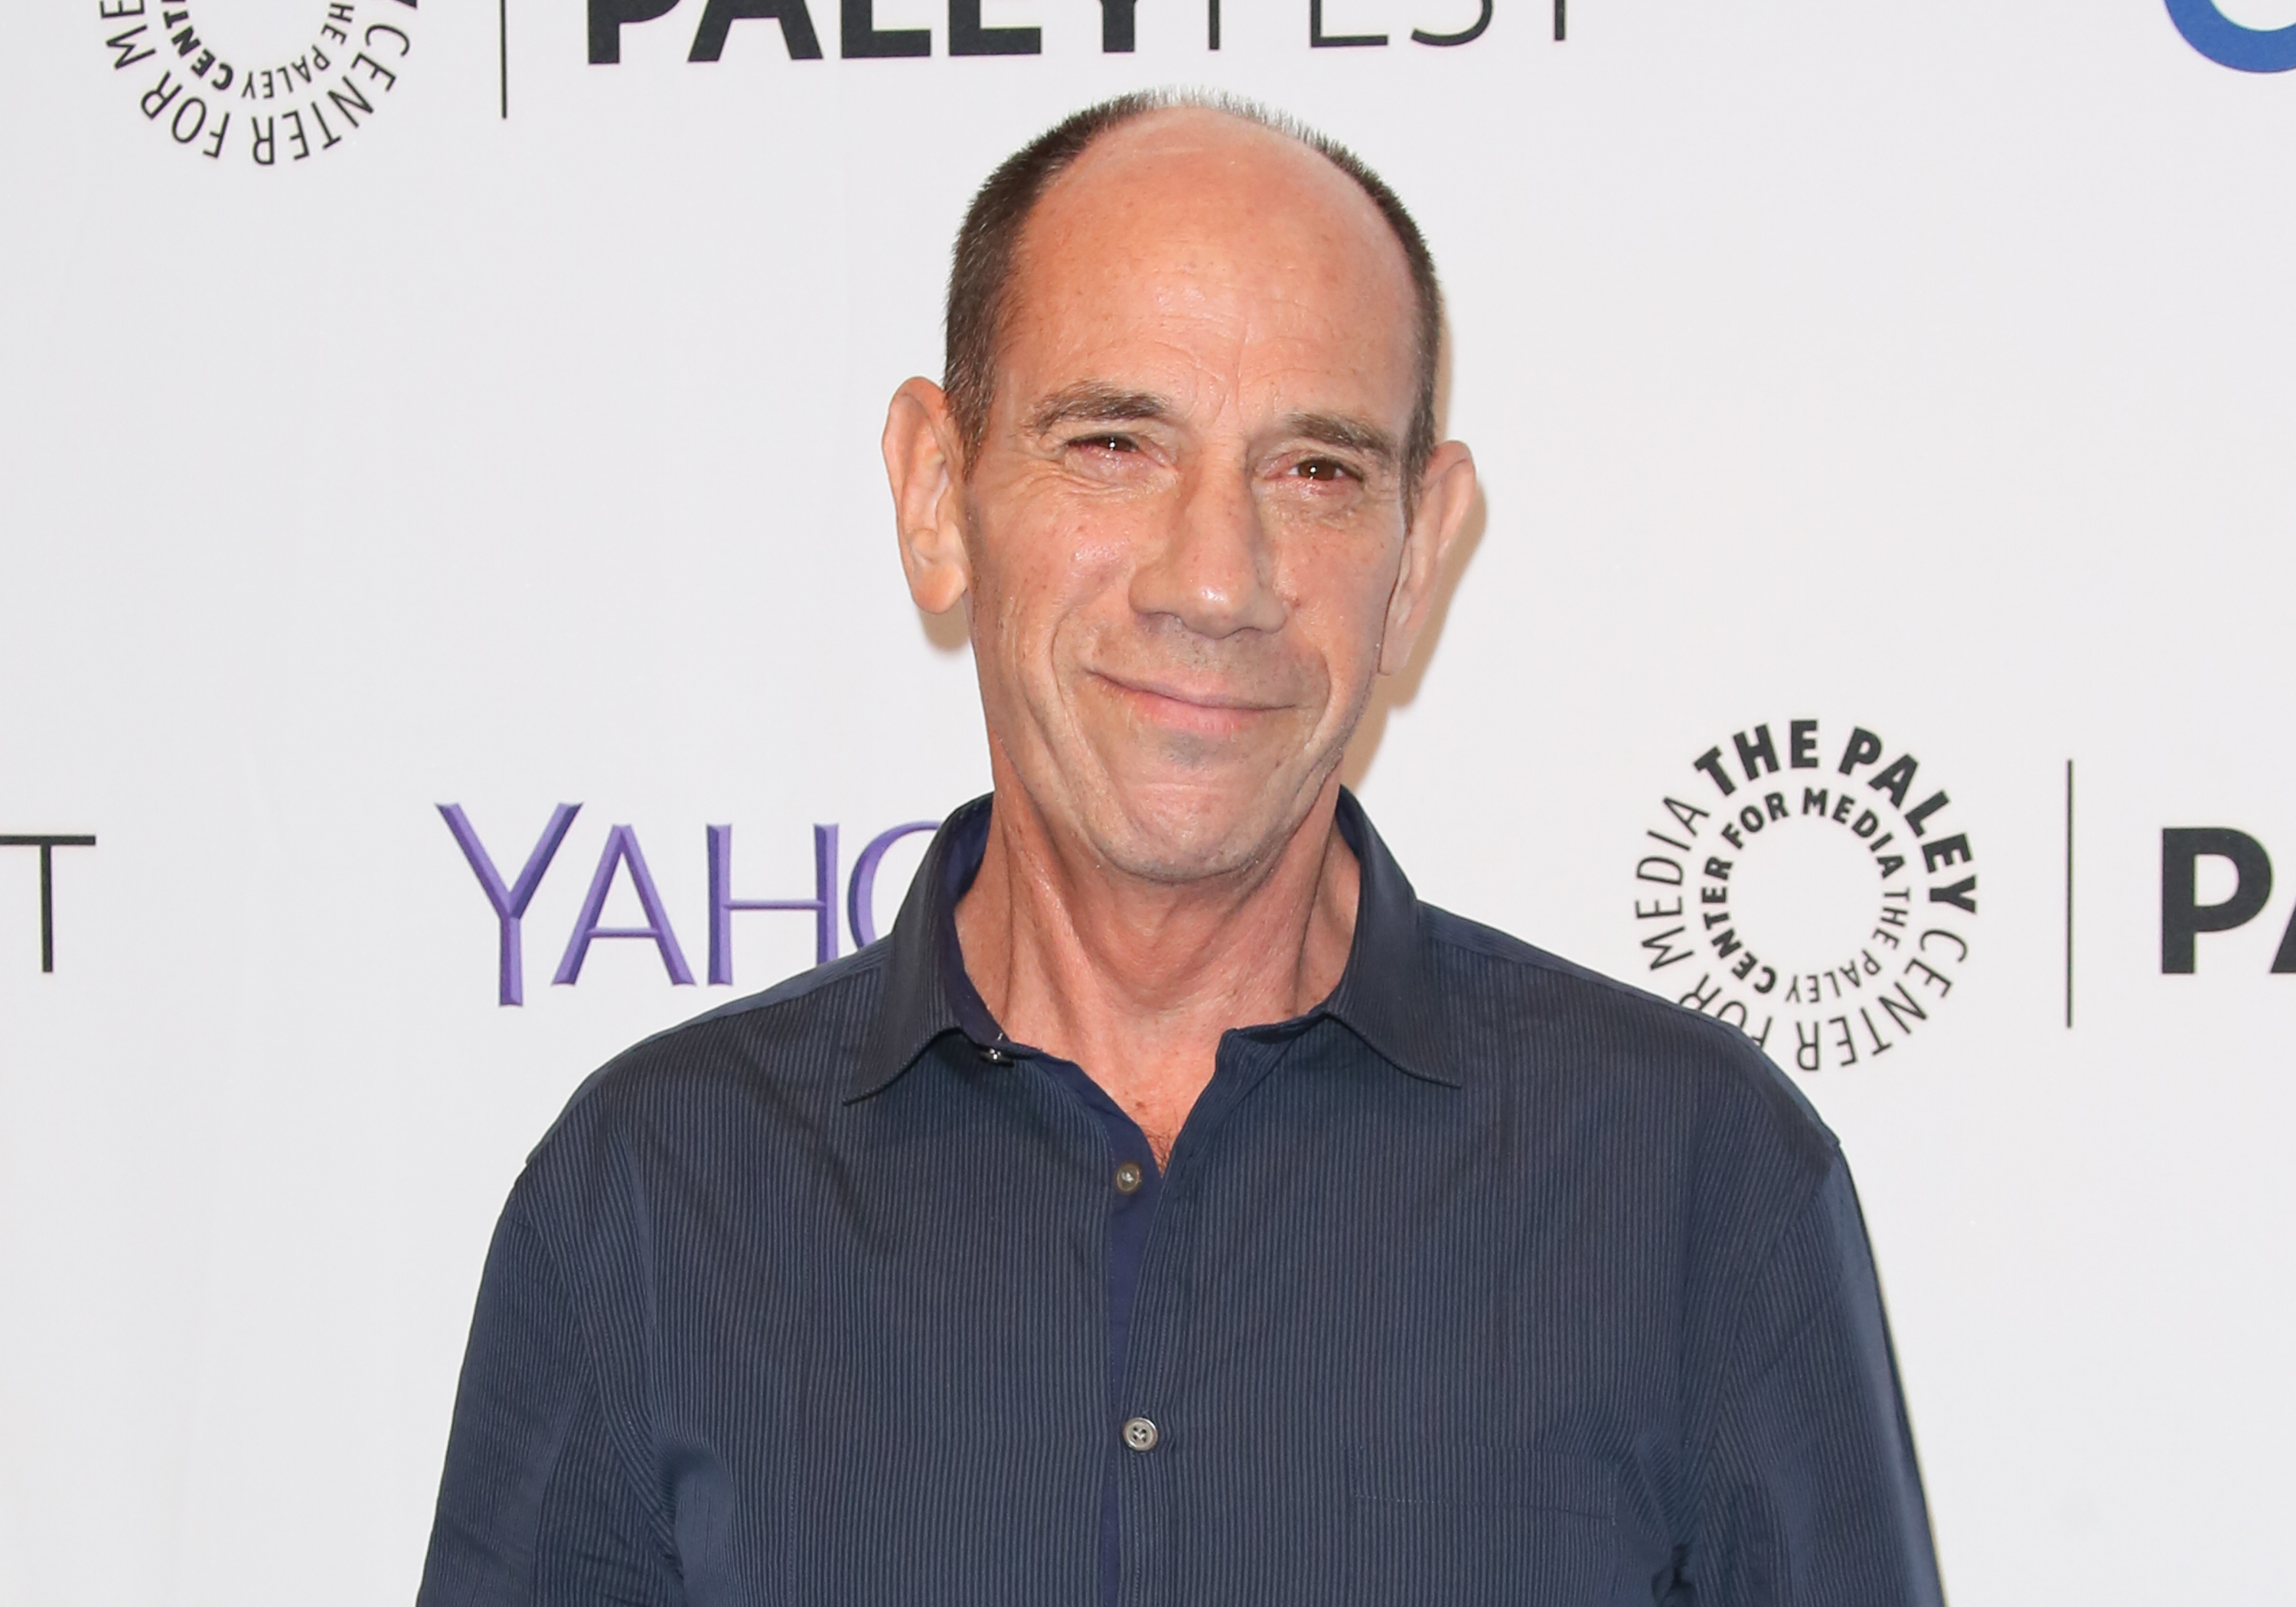 Actor Miguel Ferrer attends the PaleyFest 2015 fall TV preview of  NCIS: Los Angeles  at The Paley Center for Media on September 11, 2015 in Beverly Hills, California.